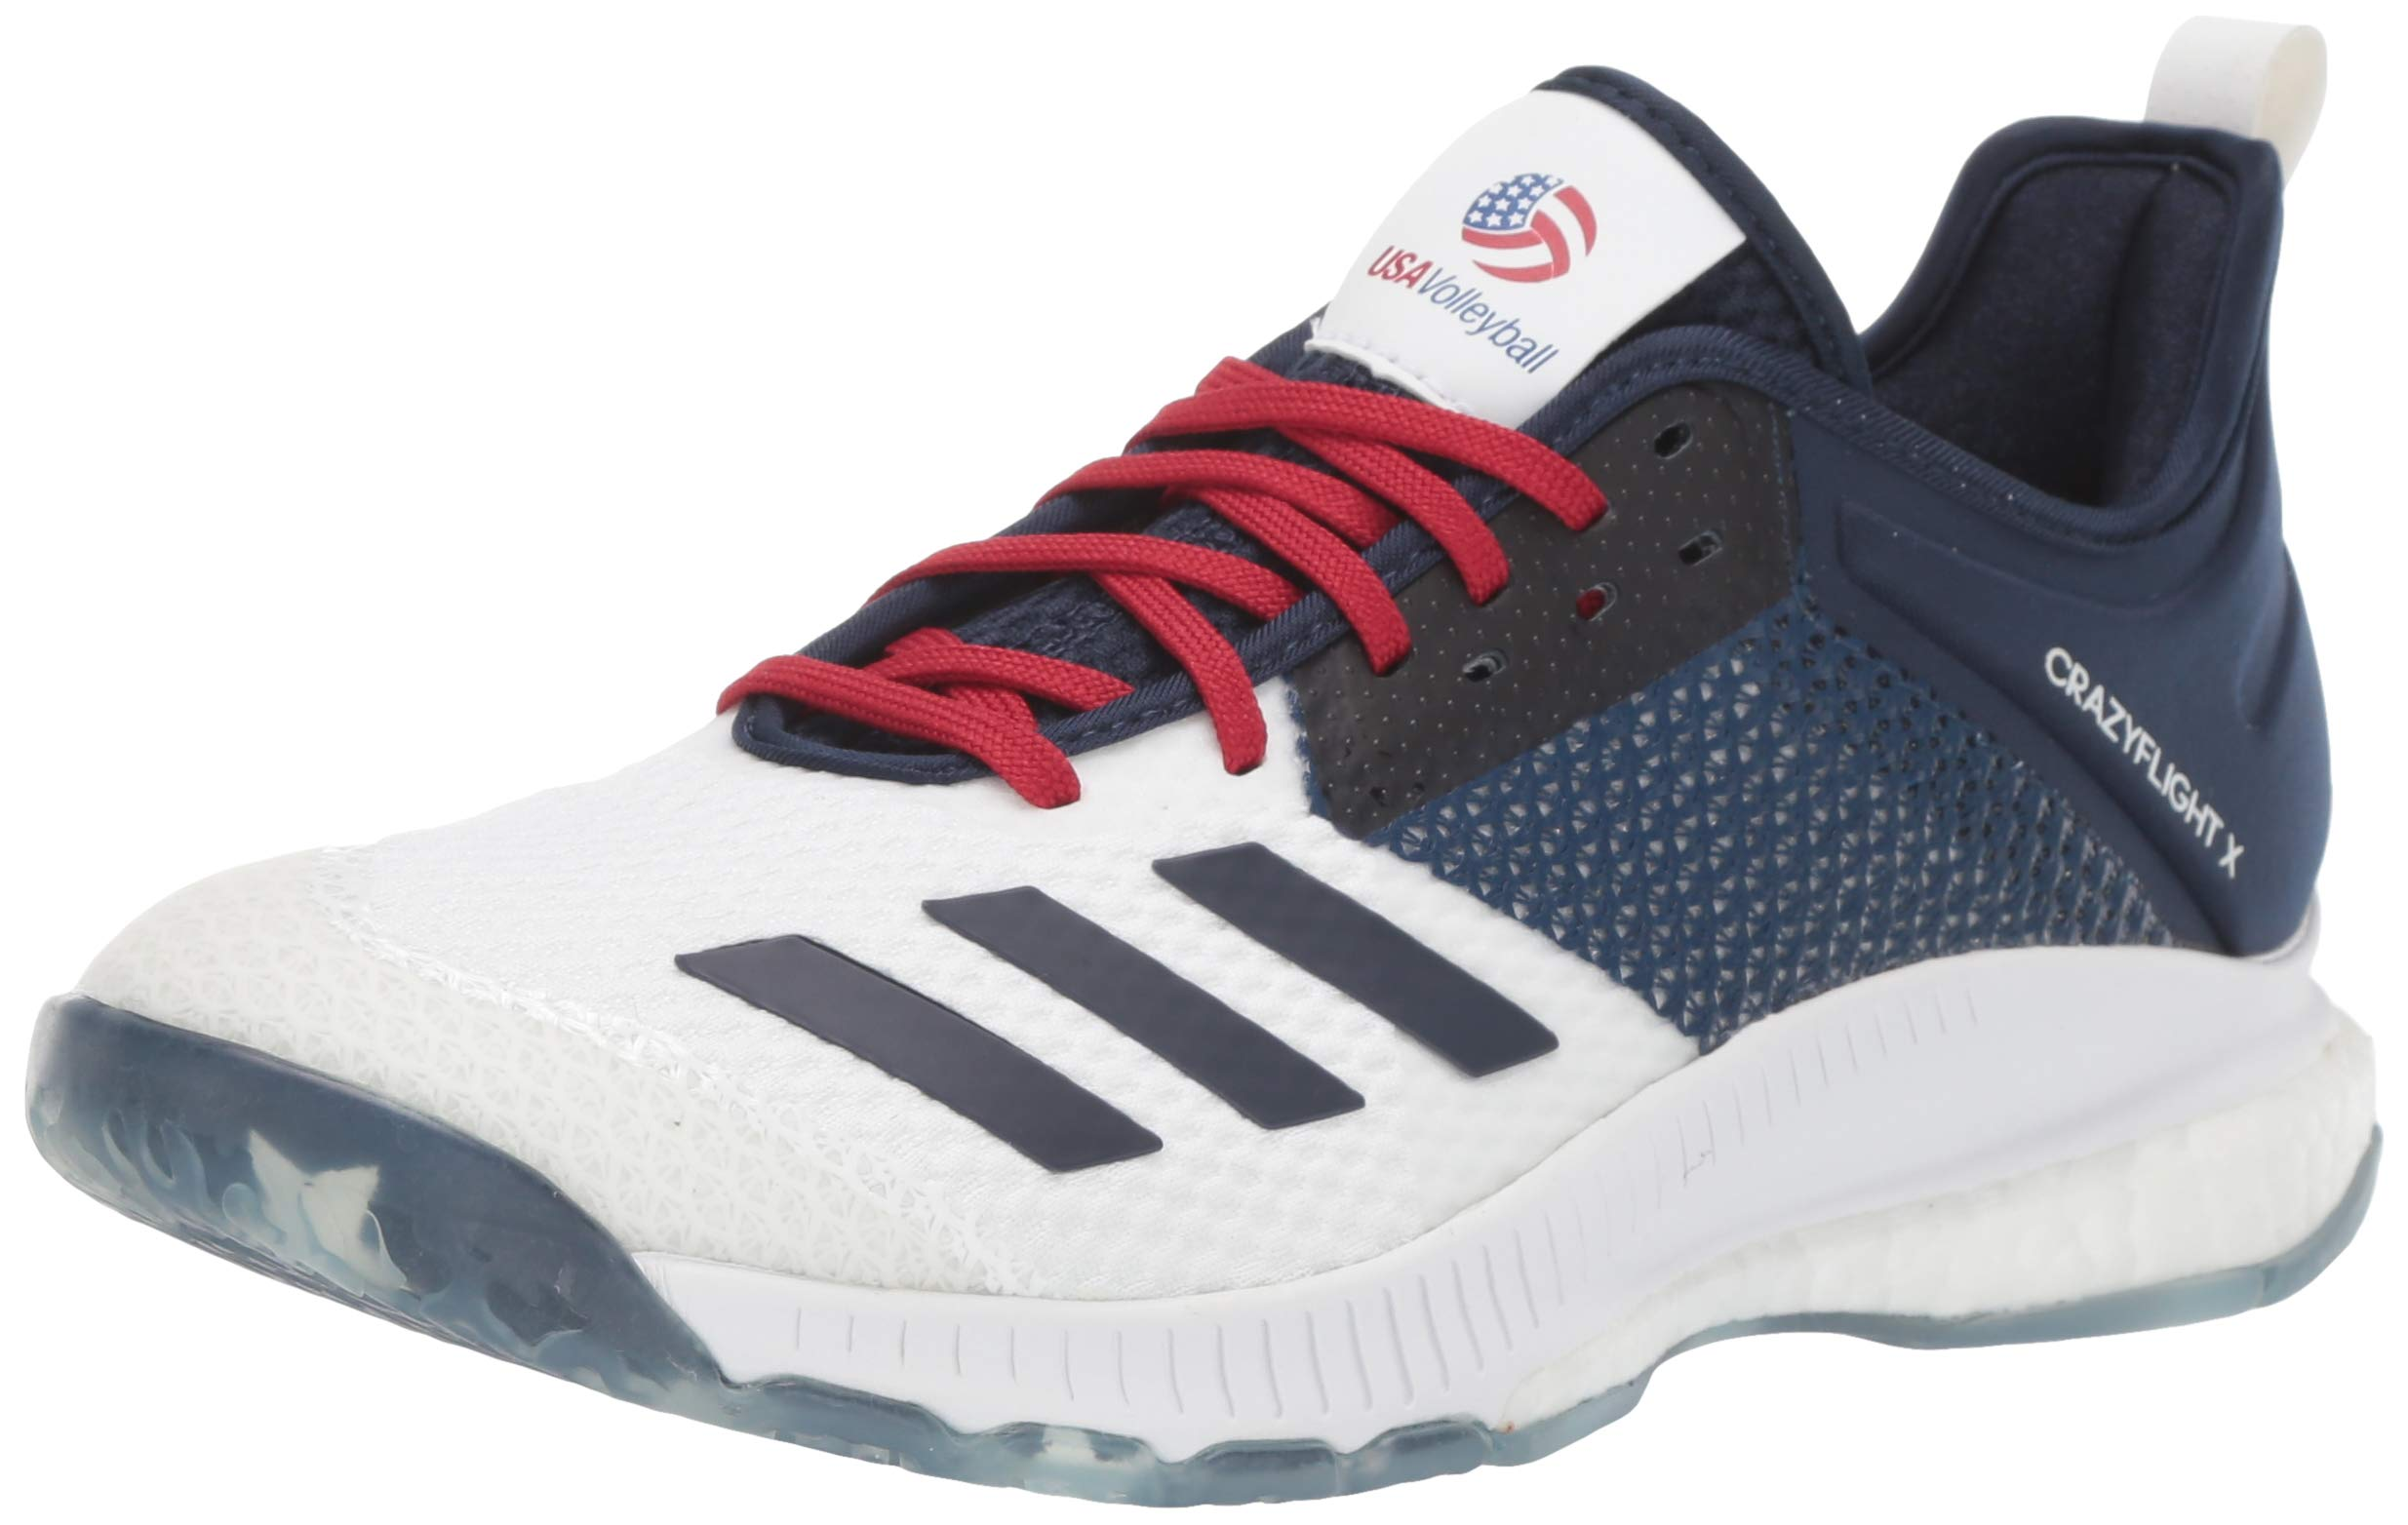 adidas Women's Crazyflight X3 USAV Volleyball Shoe, White/Collegiate navy/power Red, 10 M US by adidas